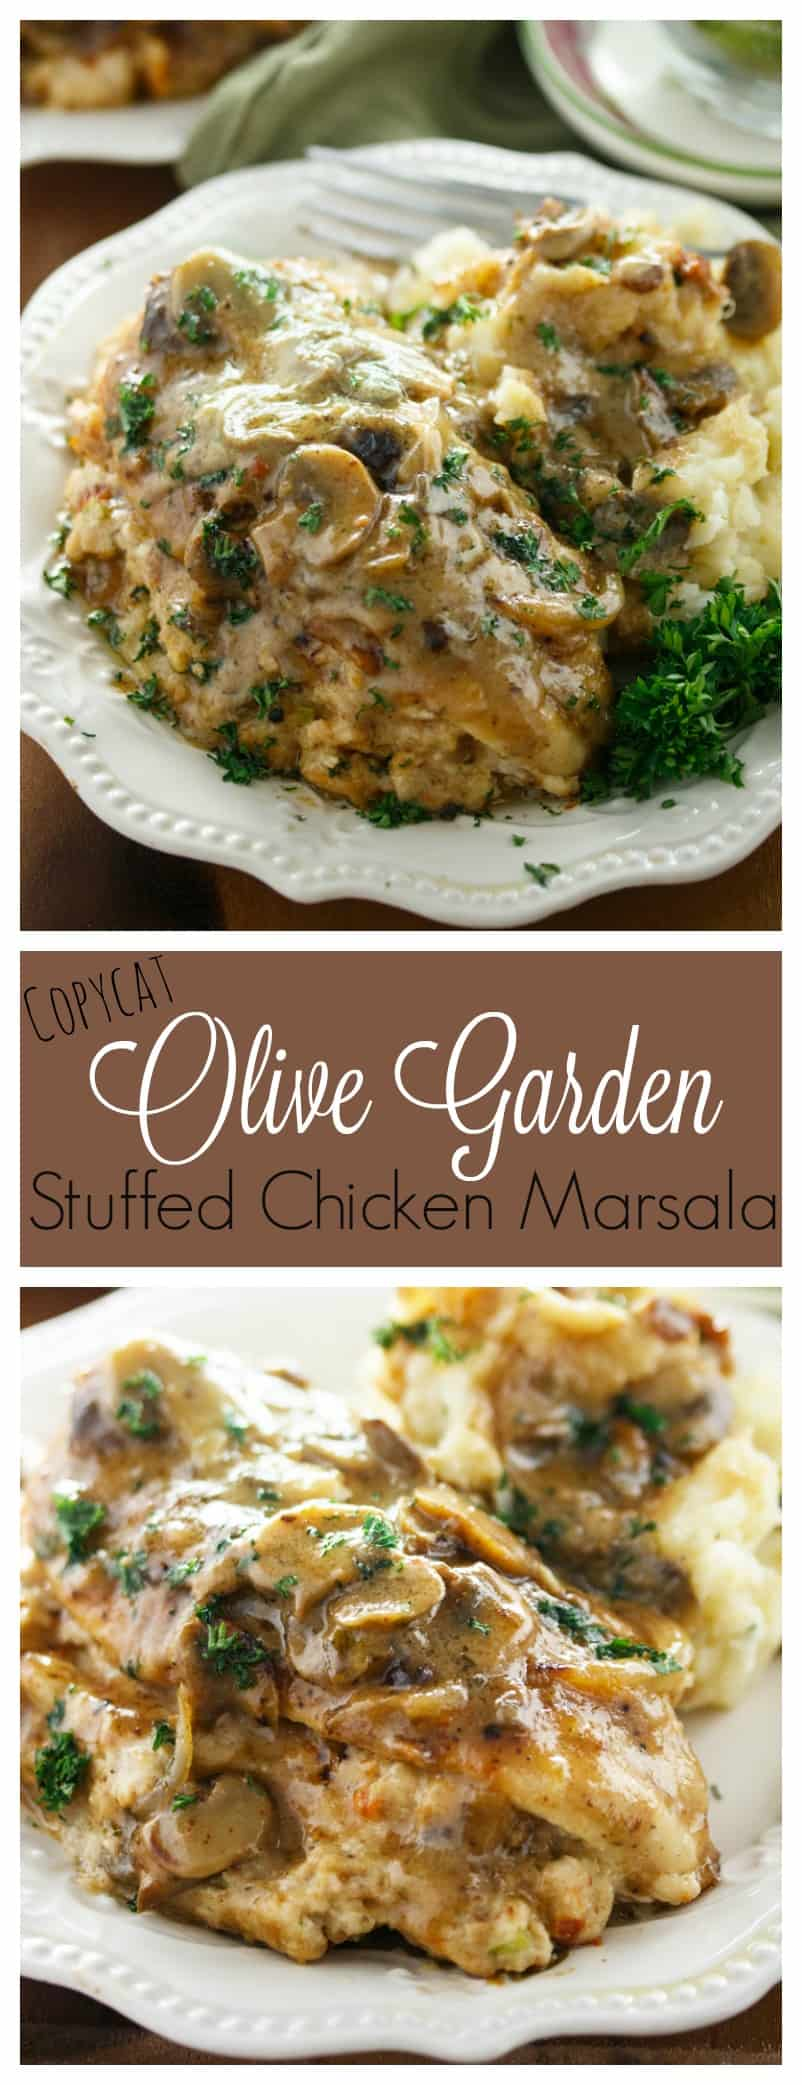 Olive Garden Stuffed Chicken Marsala - The Cozy Cook